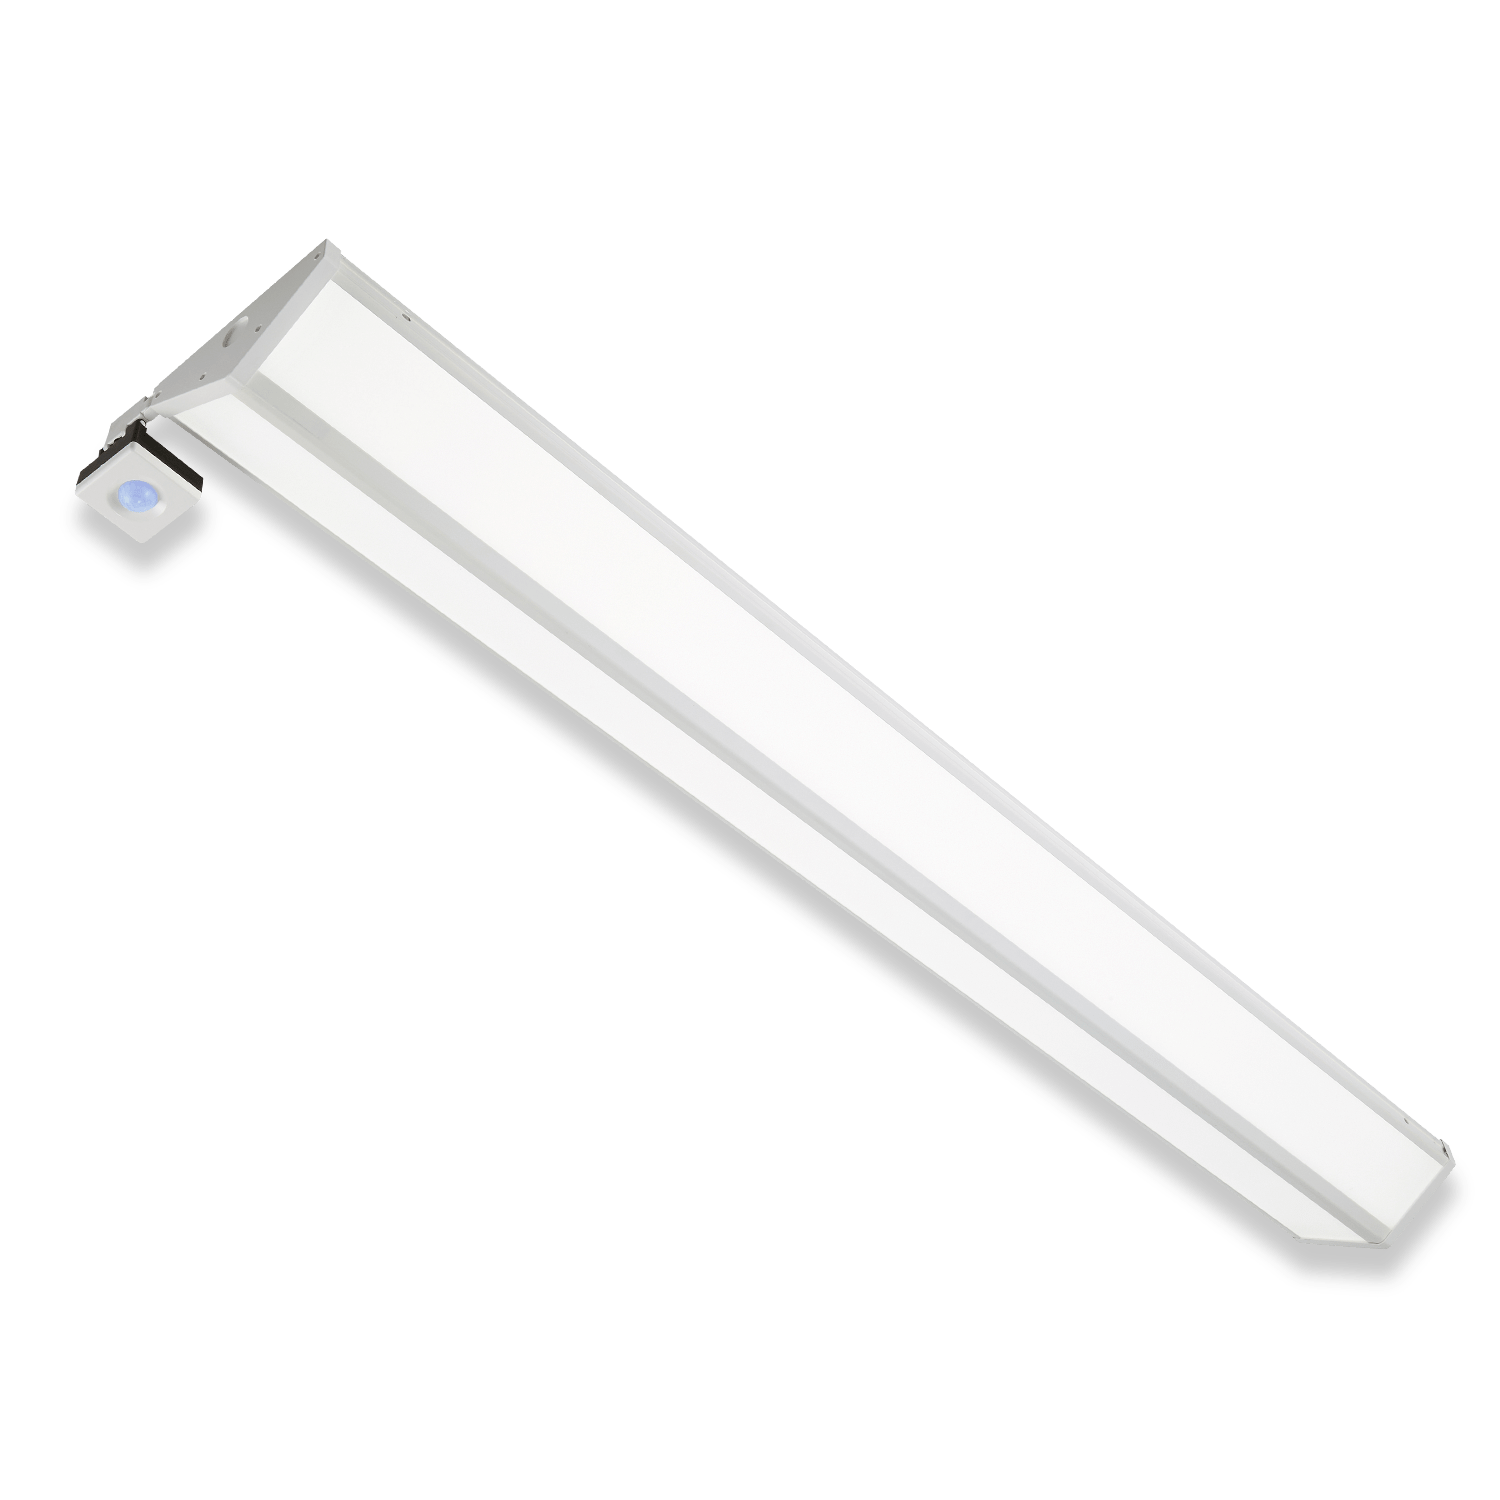 Linear Edge Panel Light Led Lighting Manufacturer